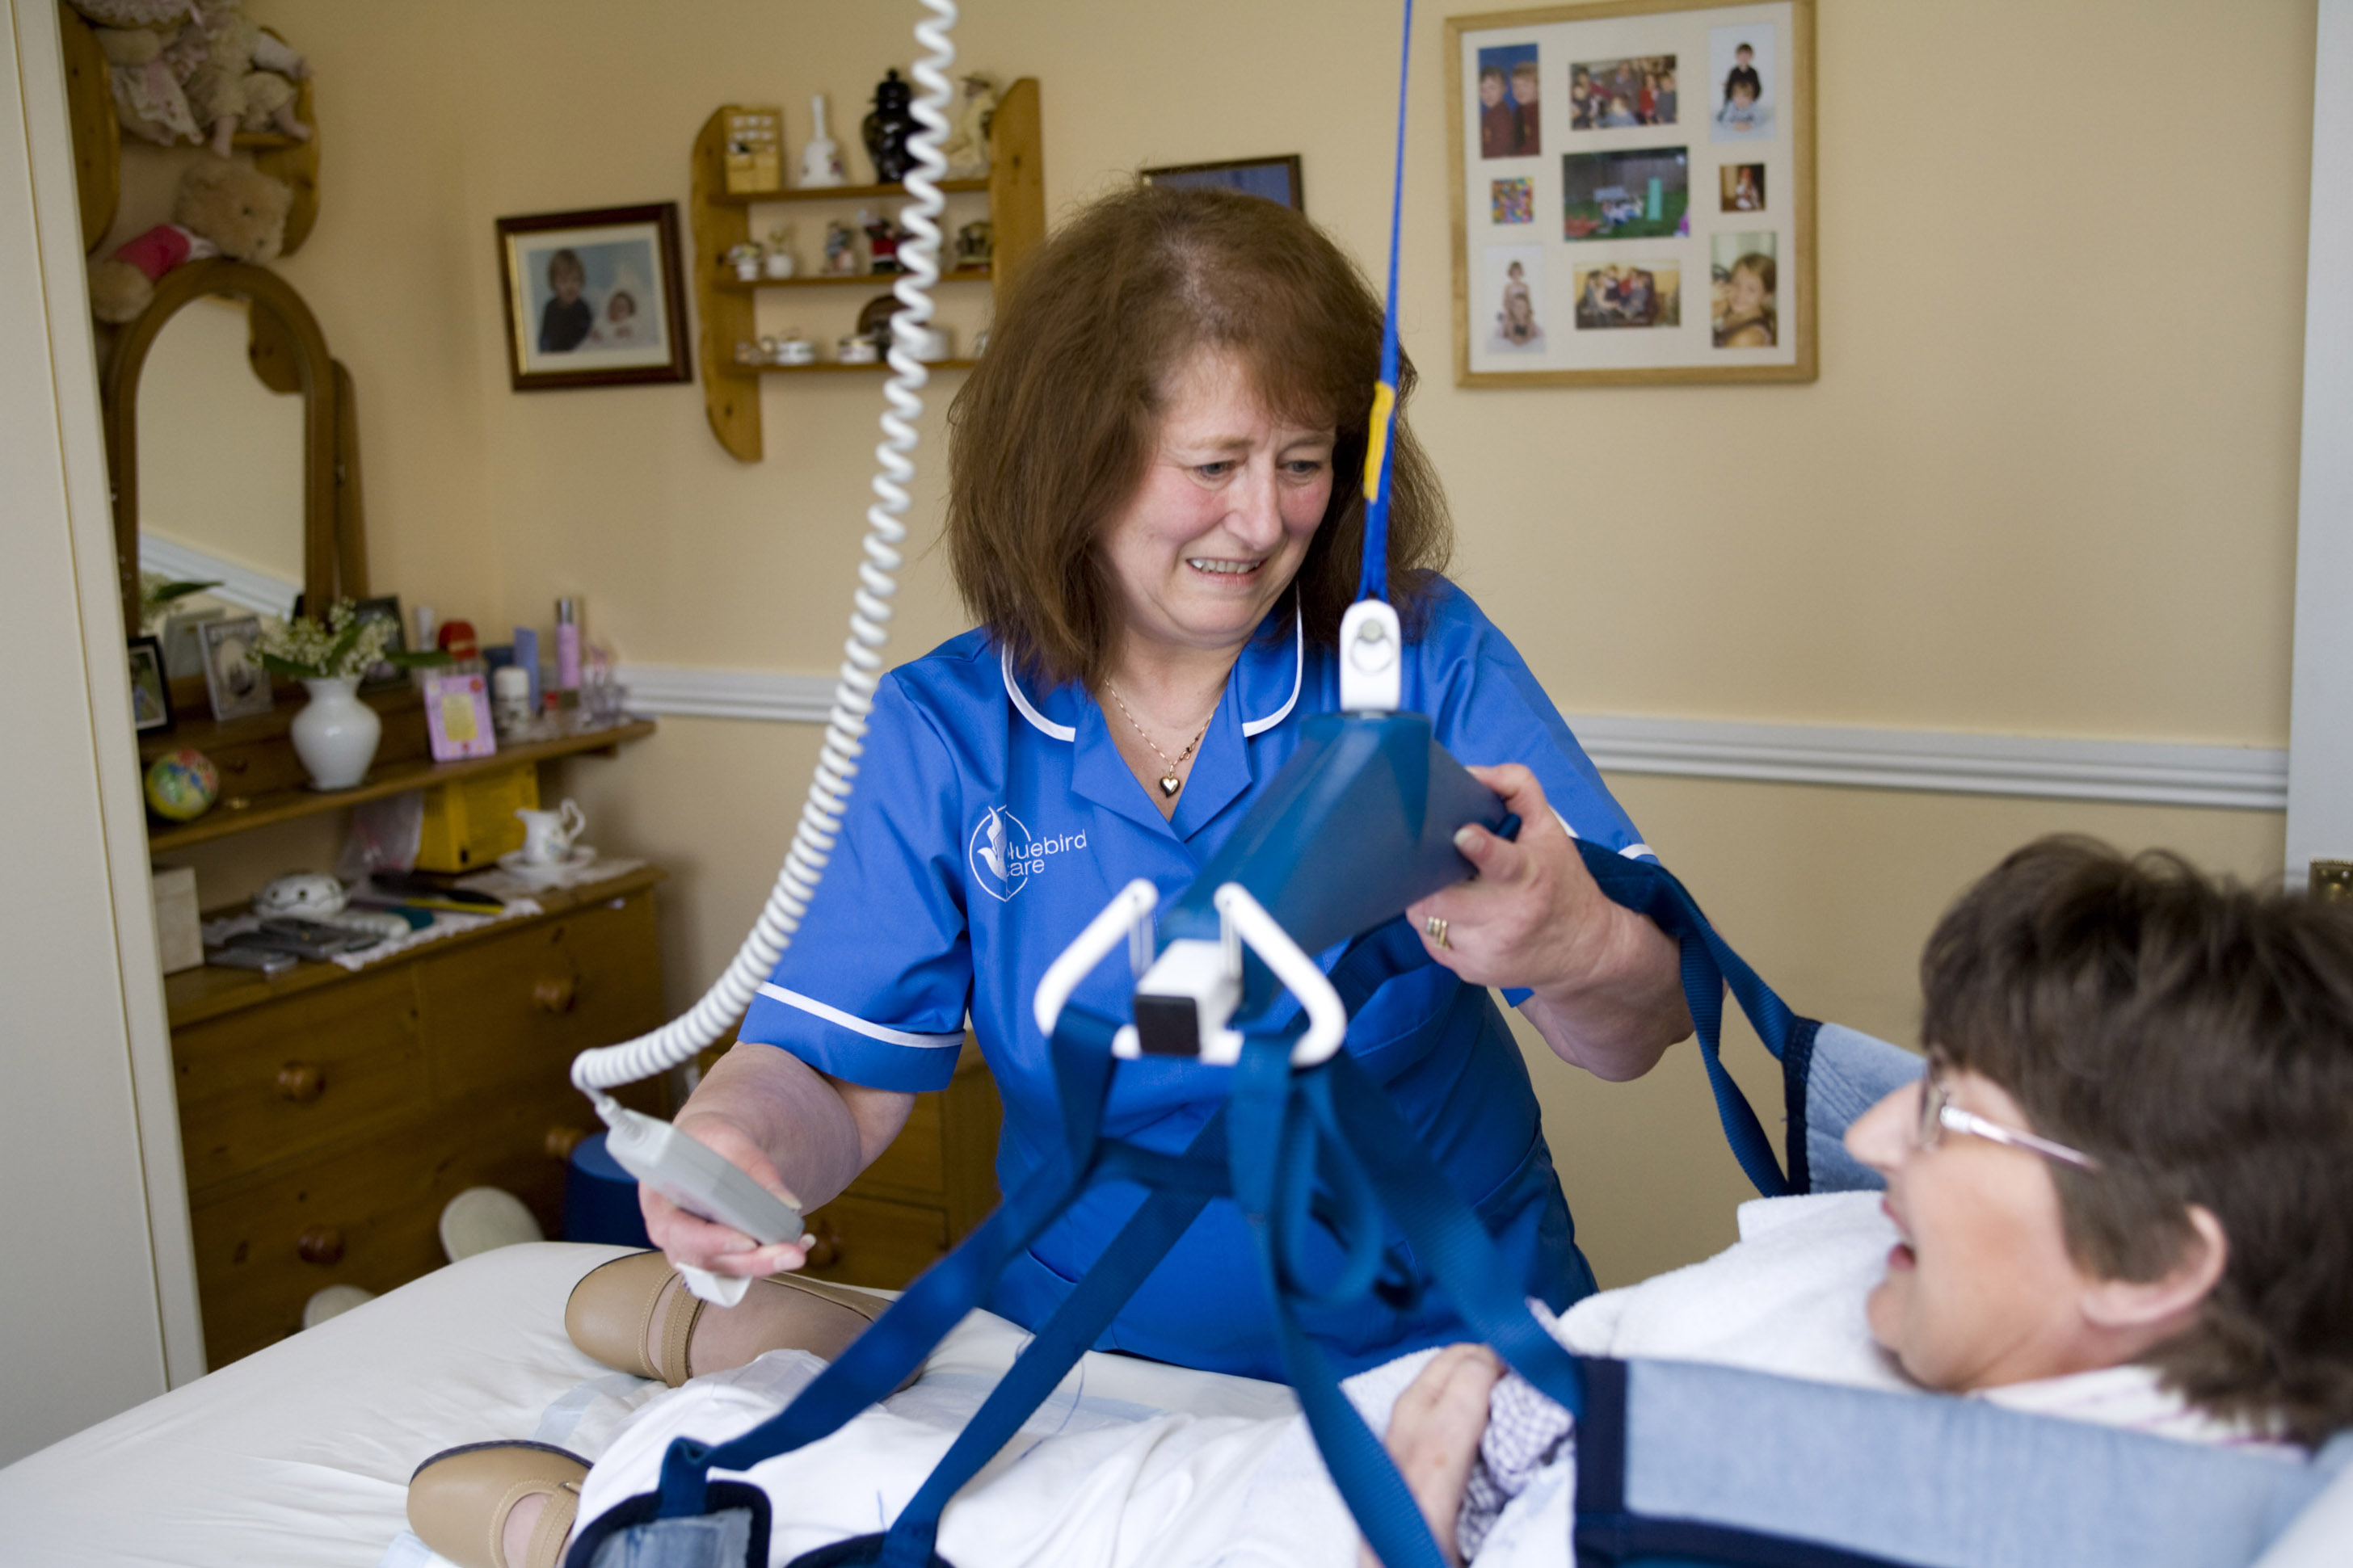 Home care, complex care in bed